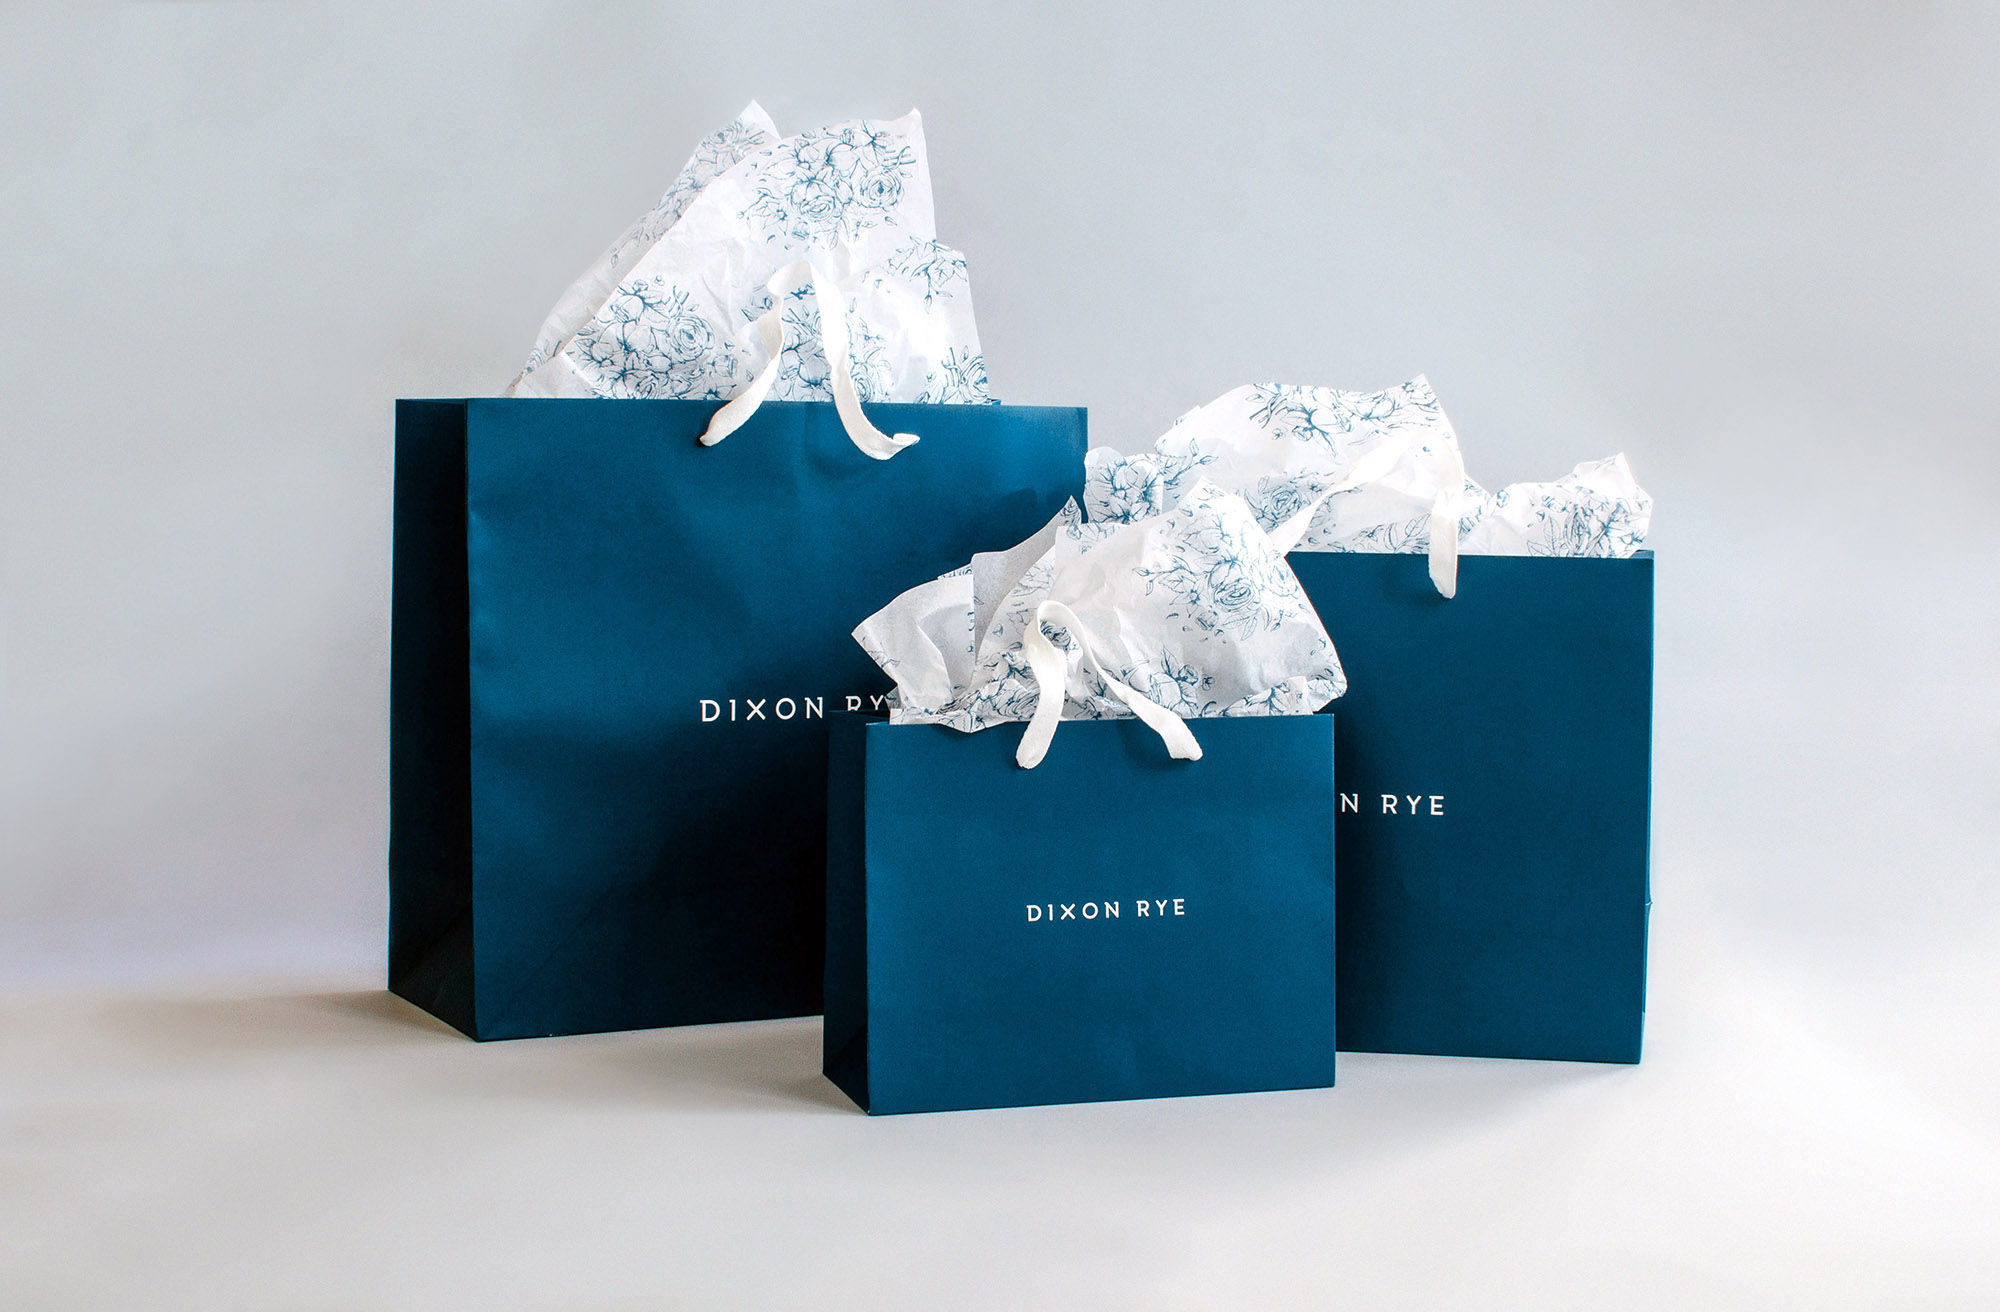 Navy retail packaging design and hand illustrated floral pattern on white tissue paper, set of three sizes, all in a row.